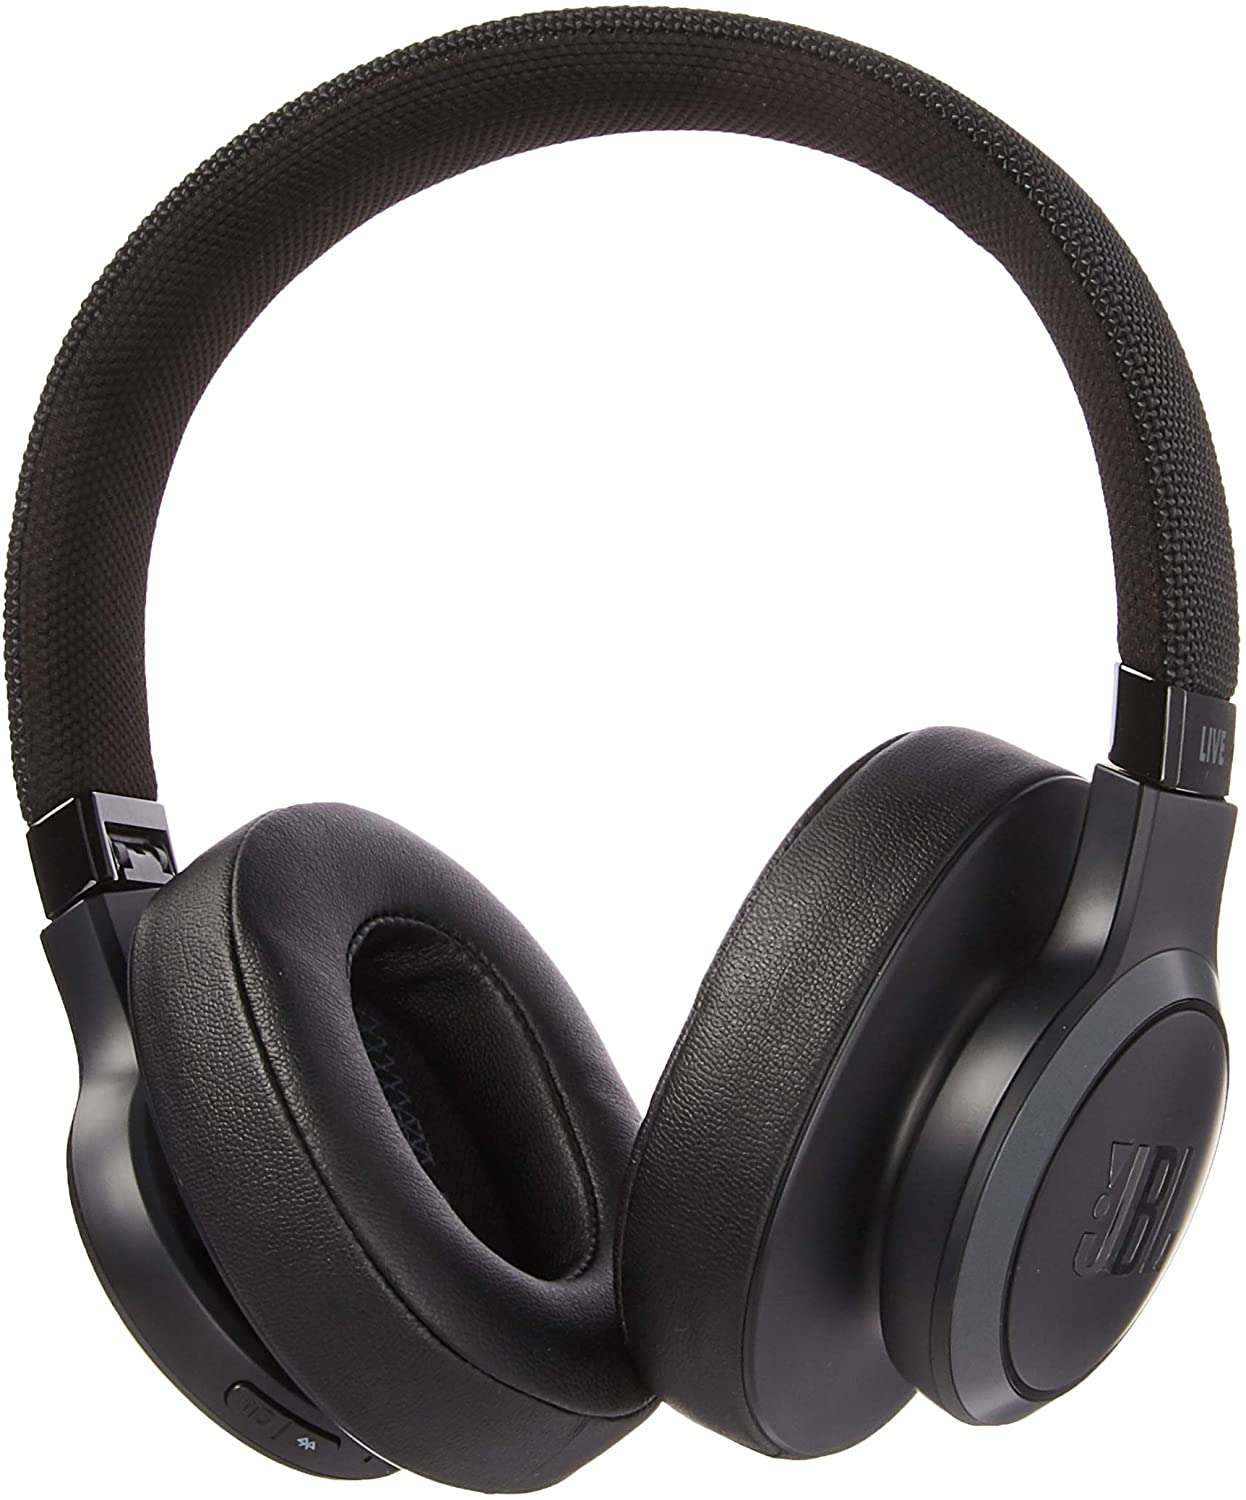 JBL Live 500BT Wireless Over-Ear Headphones with Voice Control Black